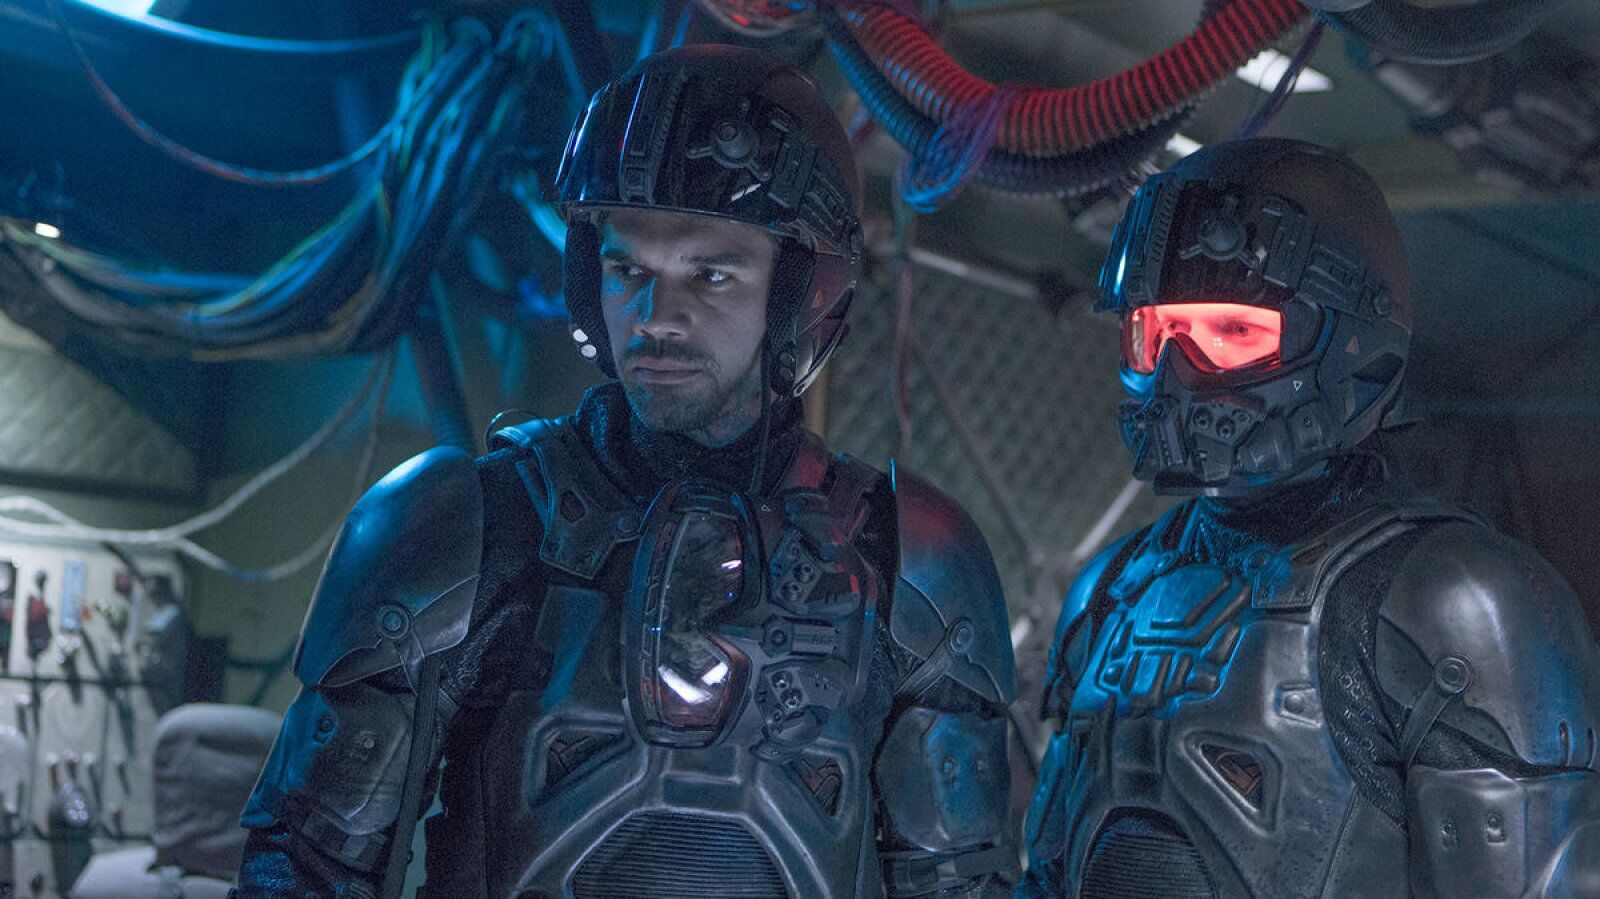 Check out the poster, first images from The Expanse season 4